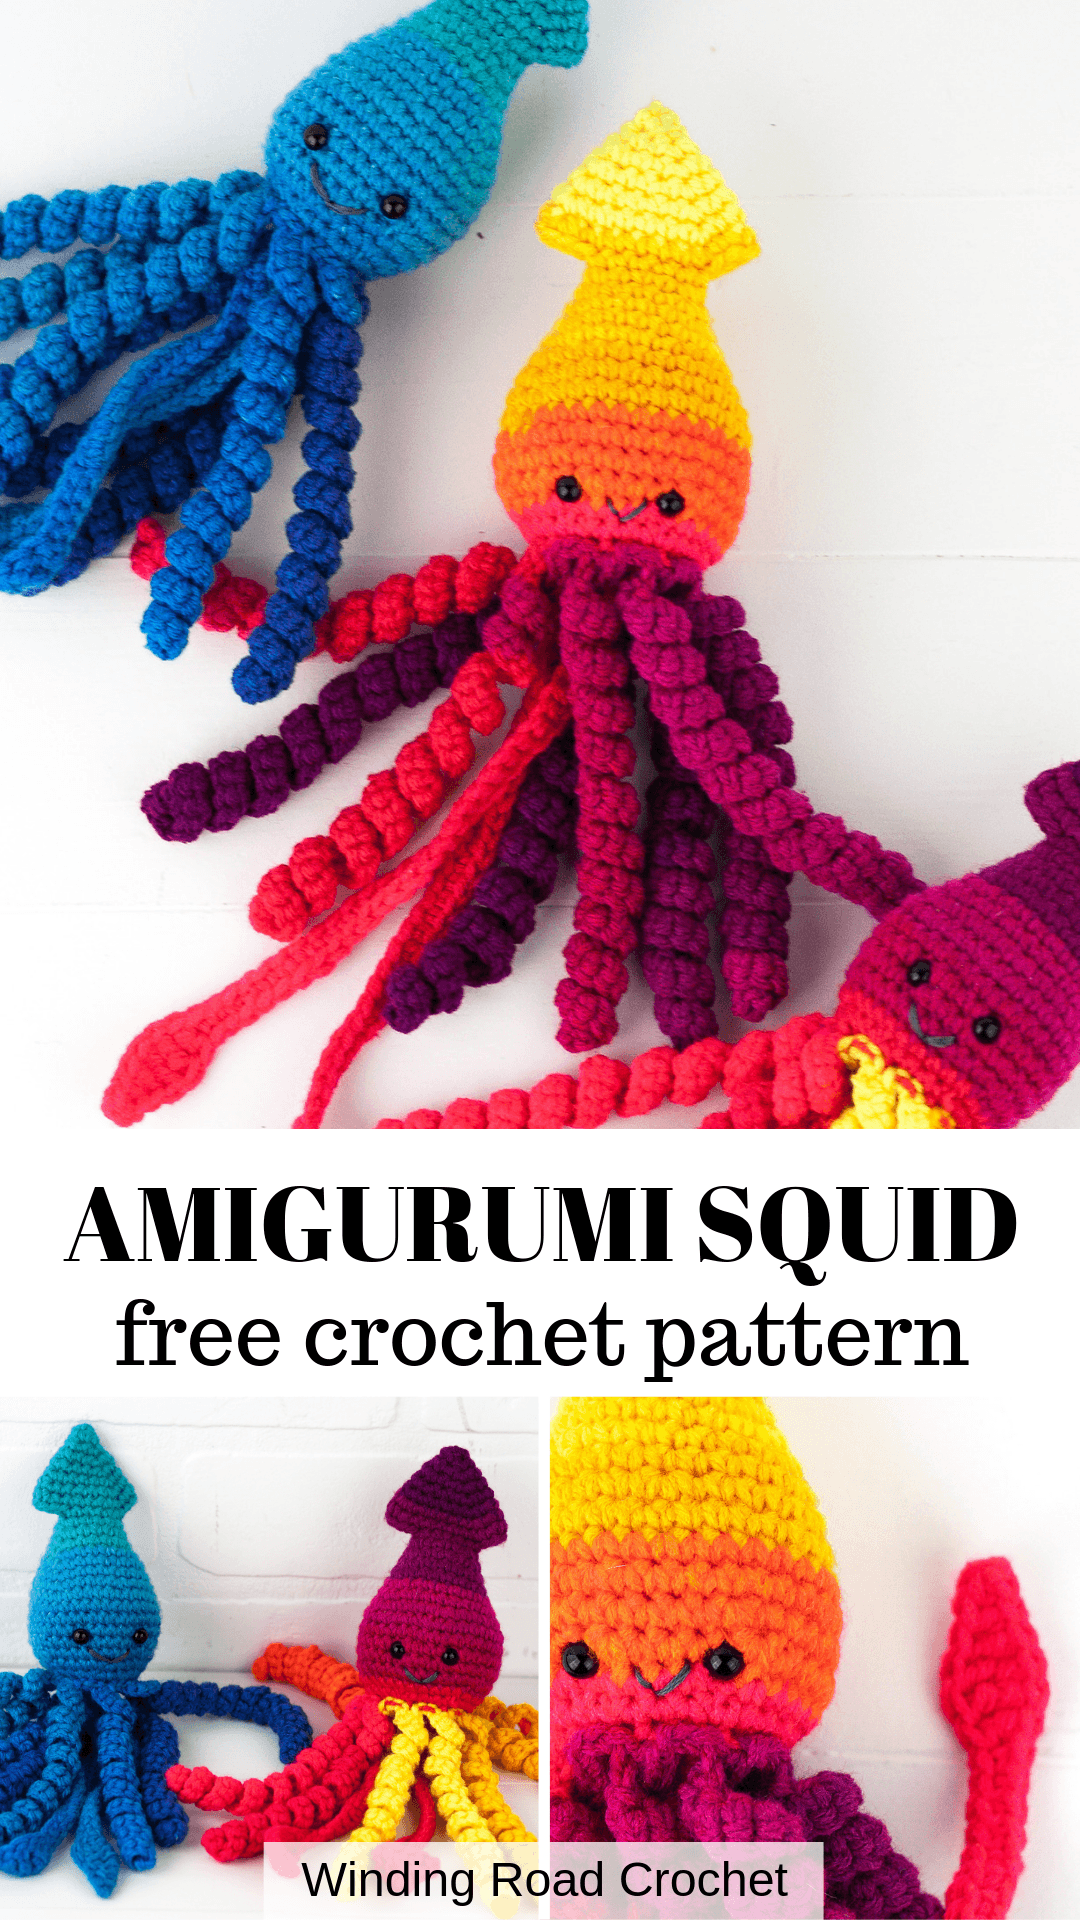 How to Crochet: Preemie Crochet Squid - Winding Road Crochet